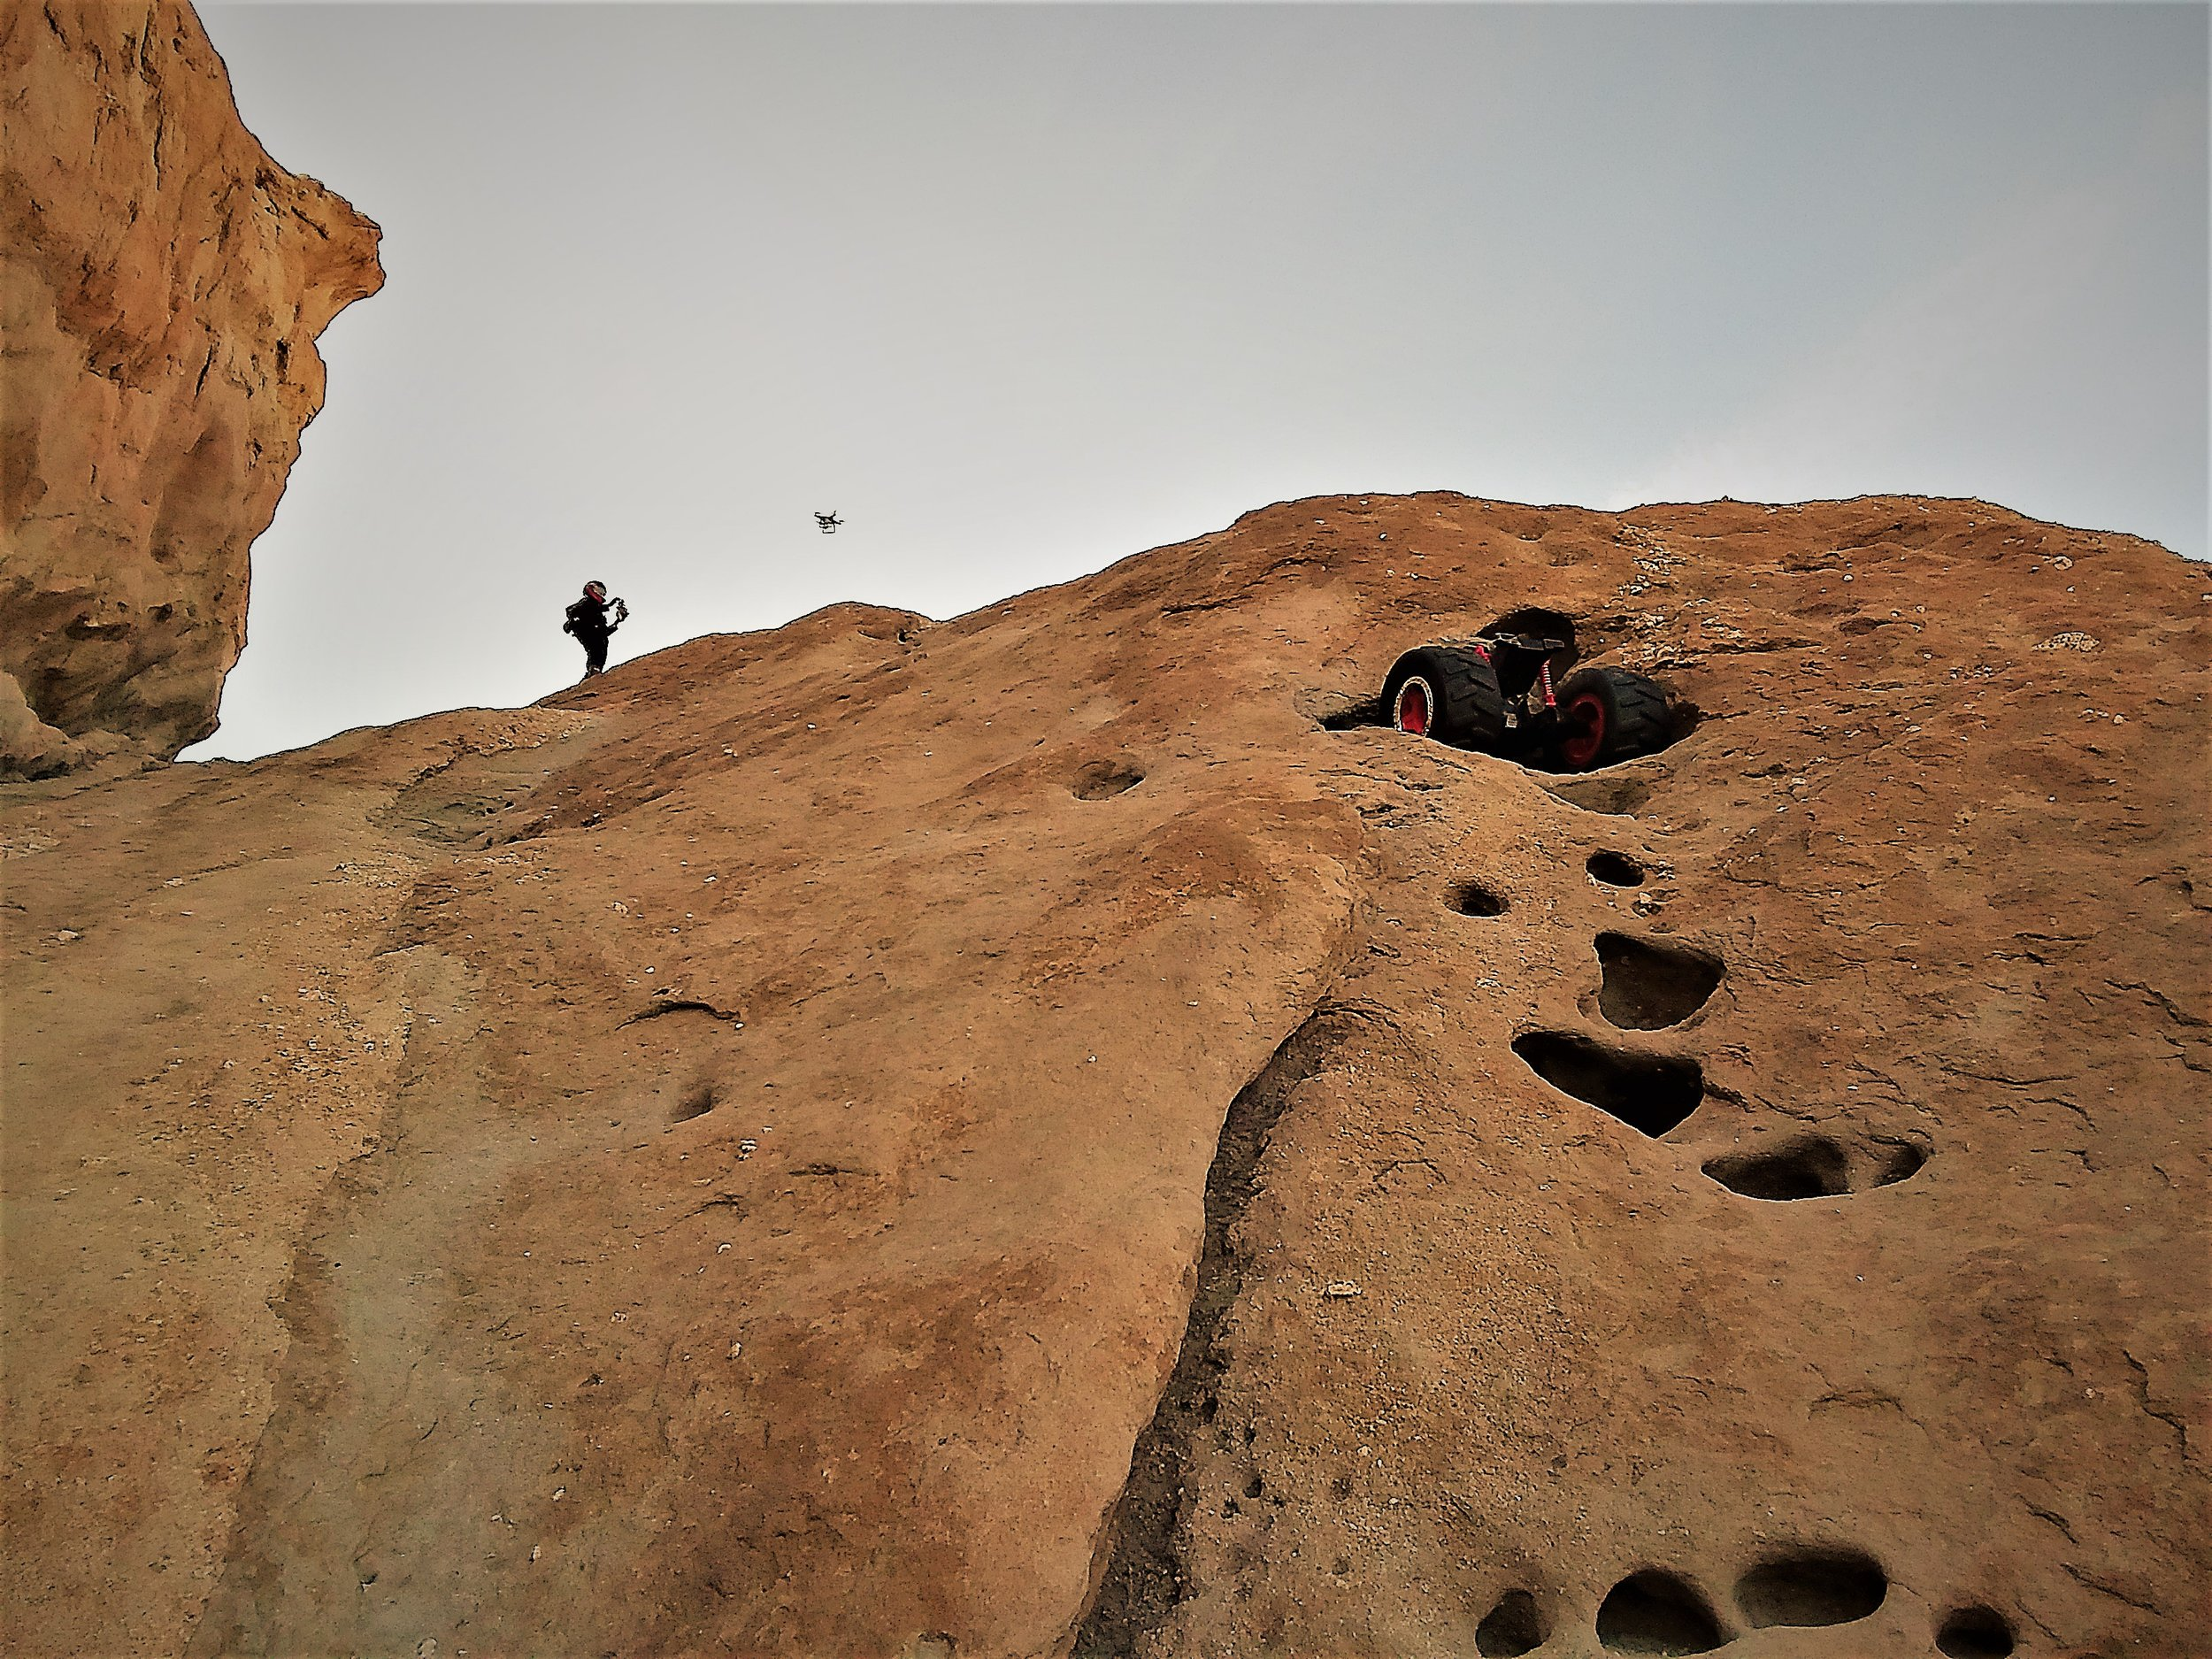 ANalog AStronaut conducting a geological EVA, GEVA, using the drone and autonomous rover at Vasquez Rocks, CA